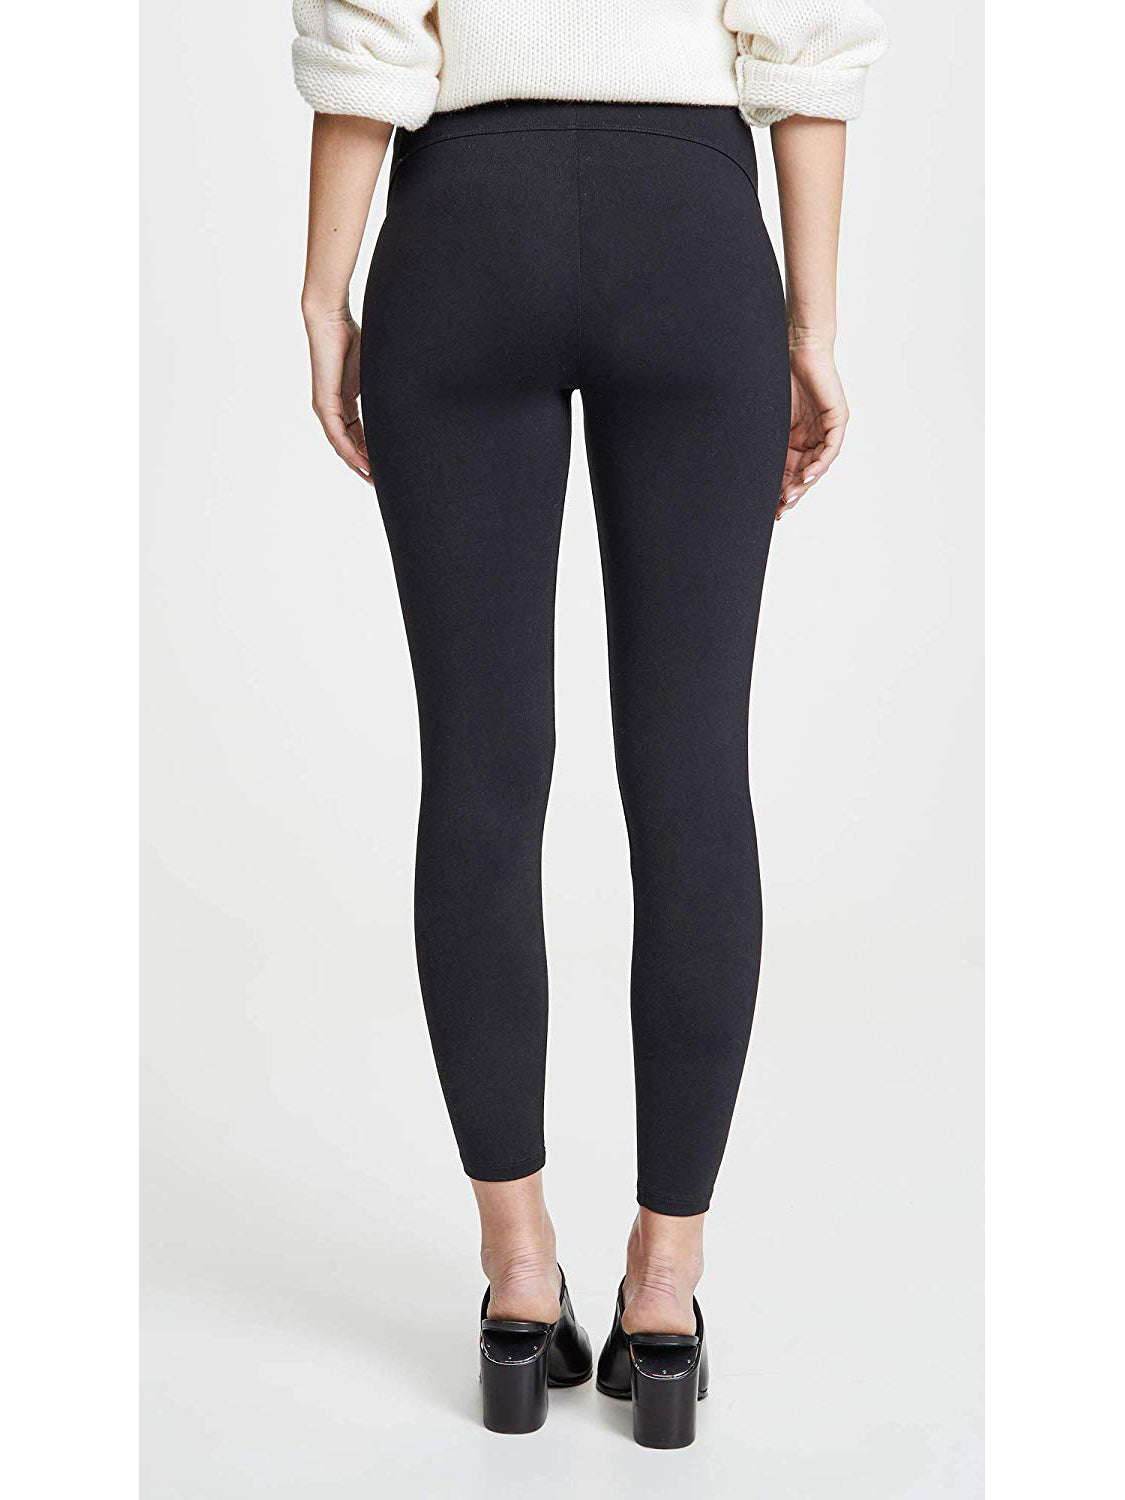 TILDEN | David Lerner Maternity Legging